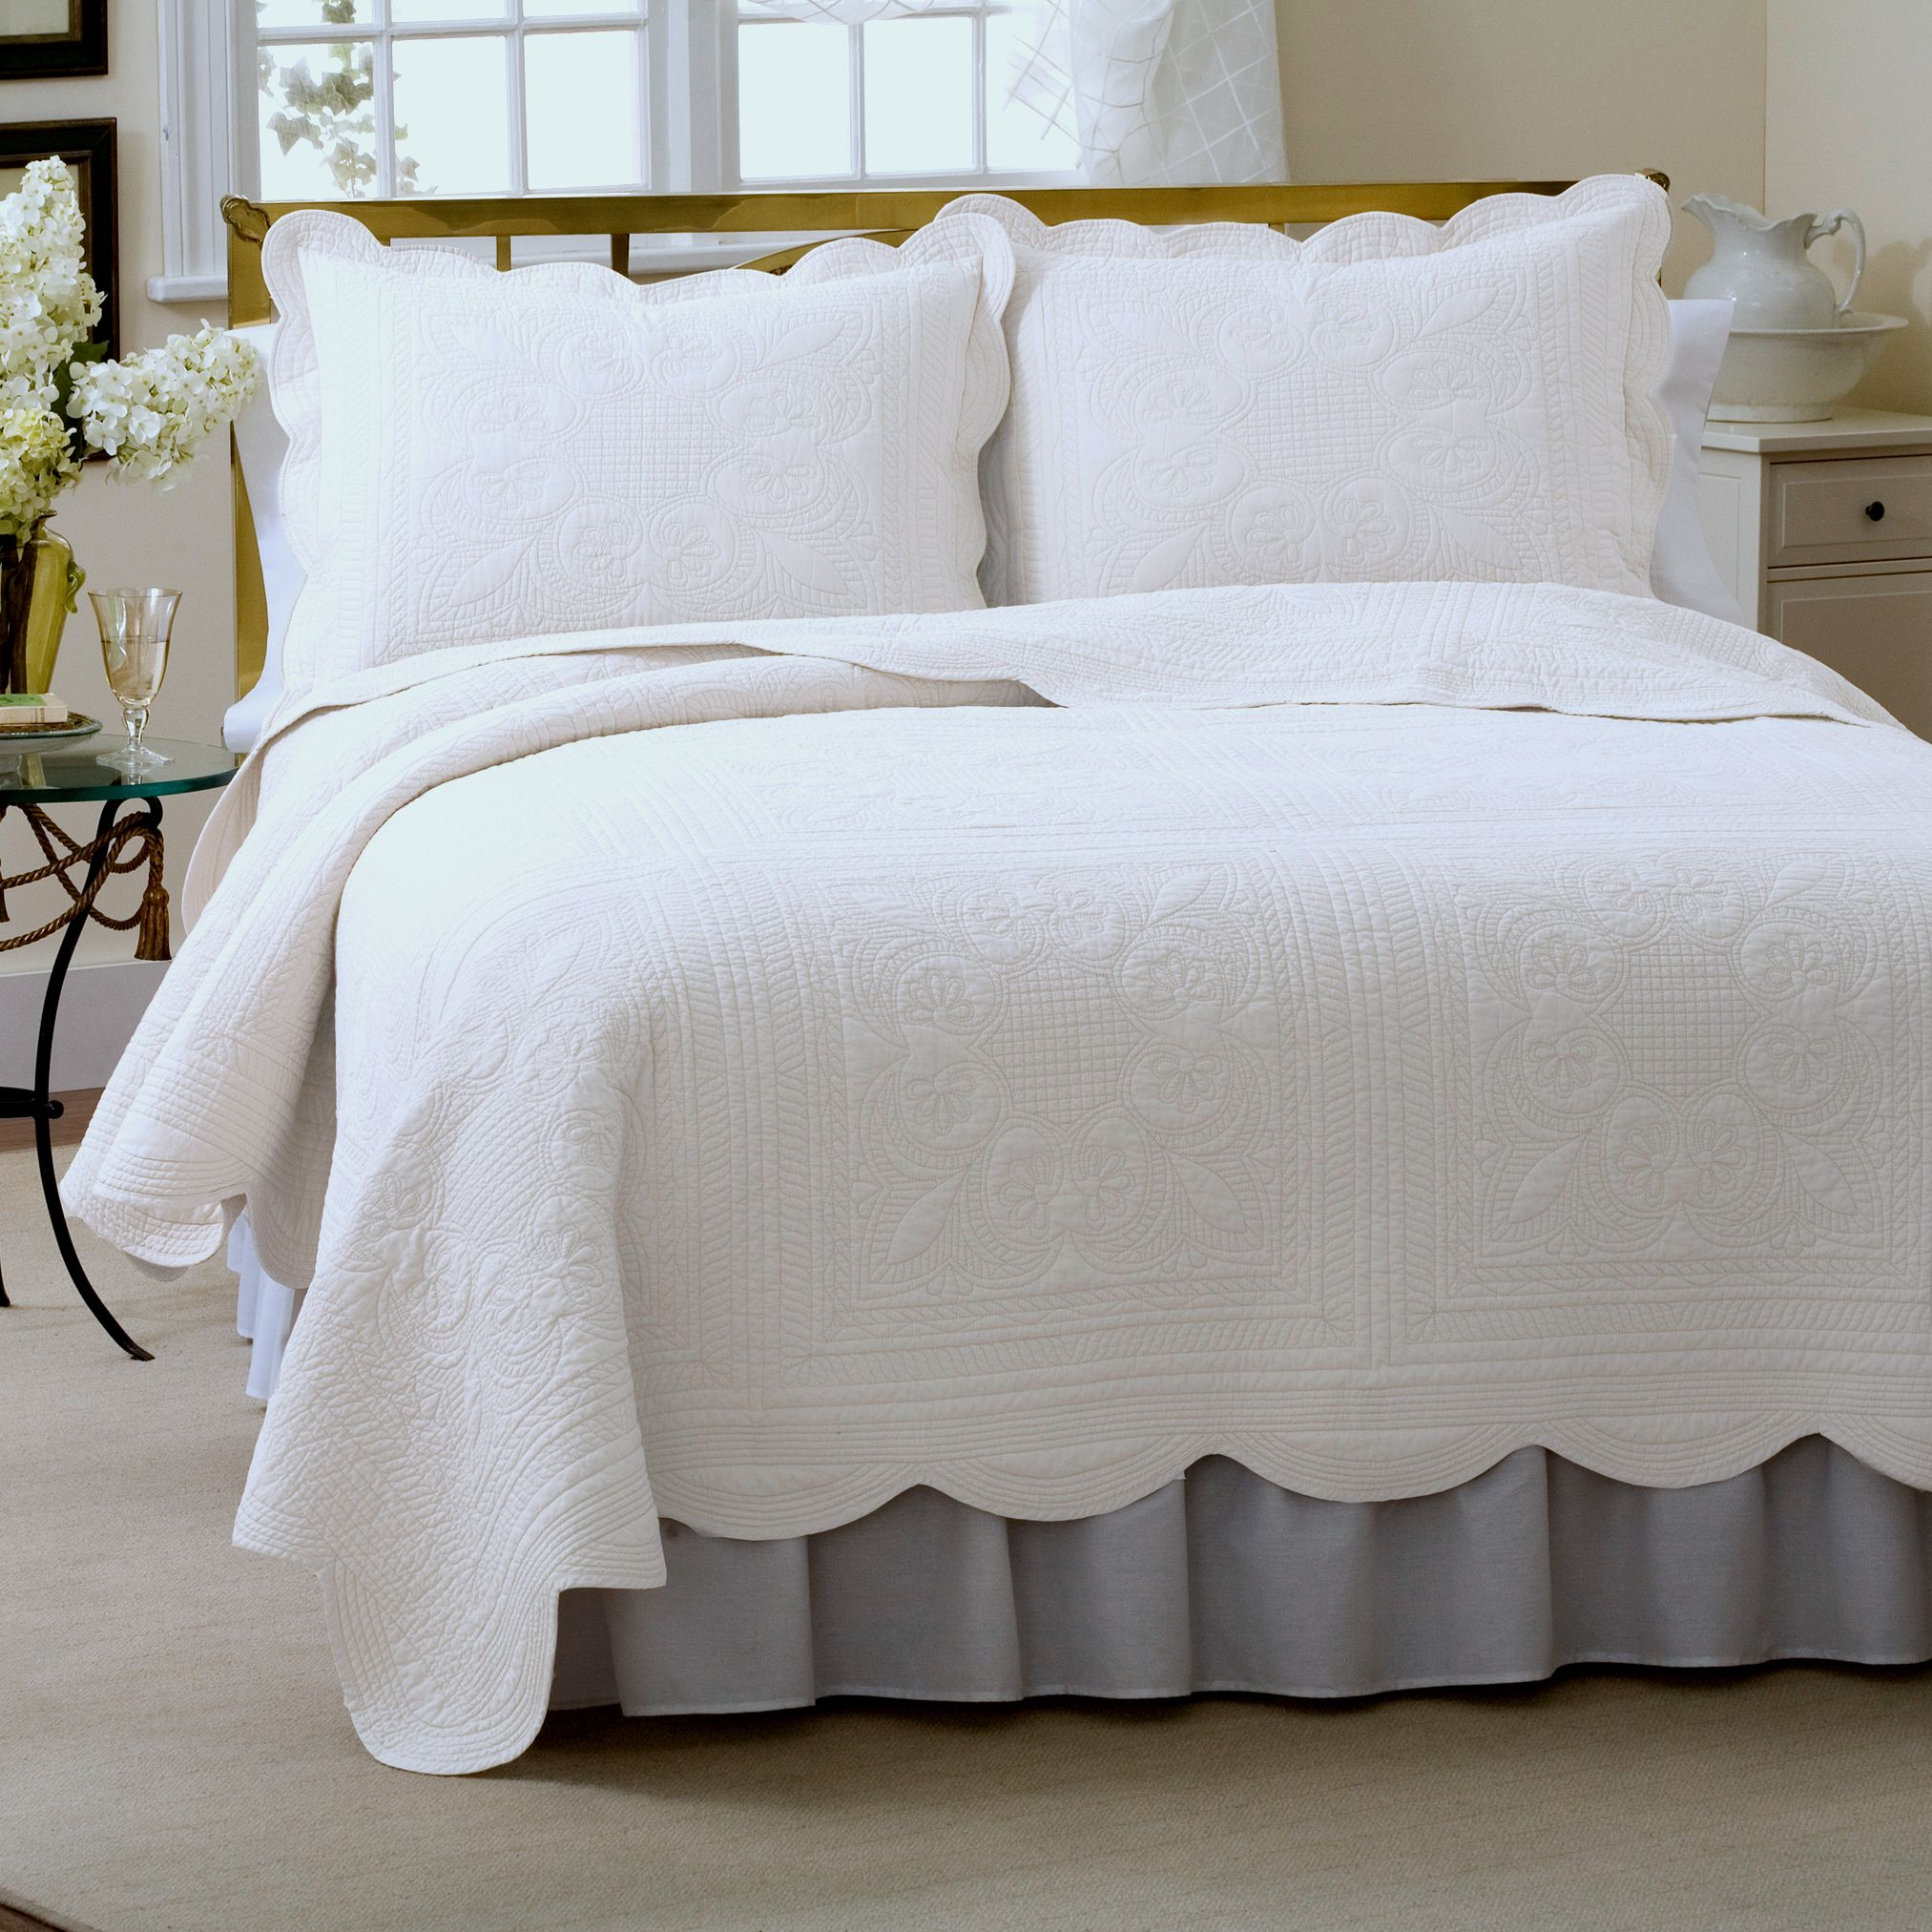 blankets blanket quilt and product coverlets cotton quilts white organic collection comforter